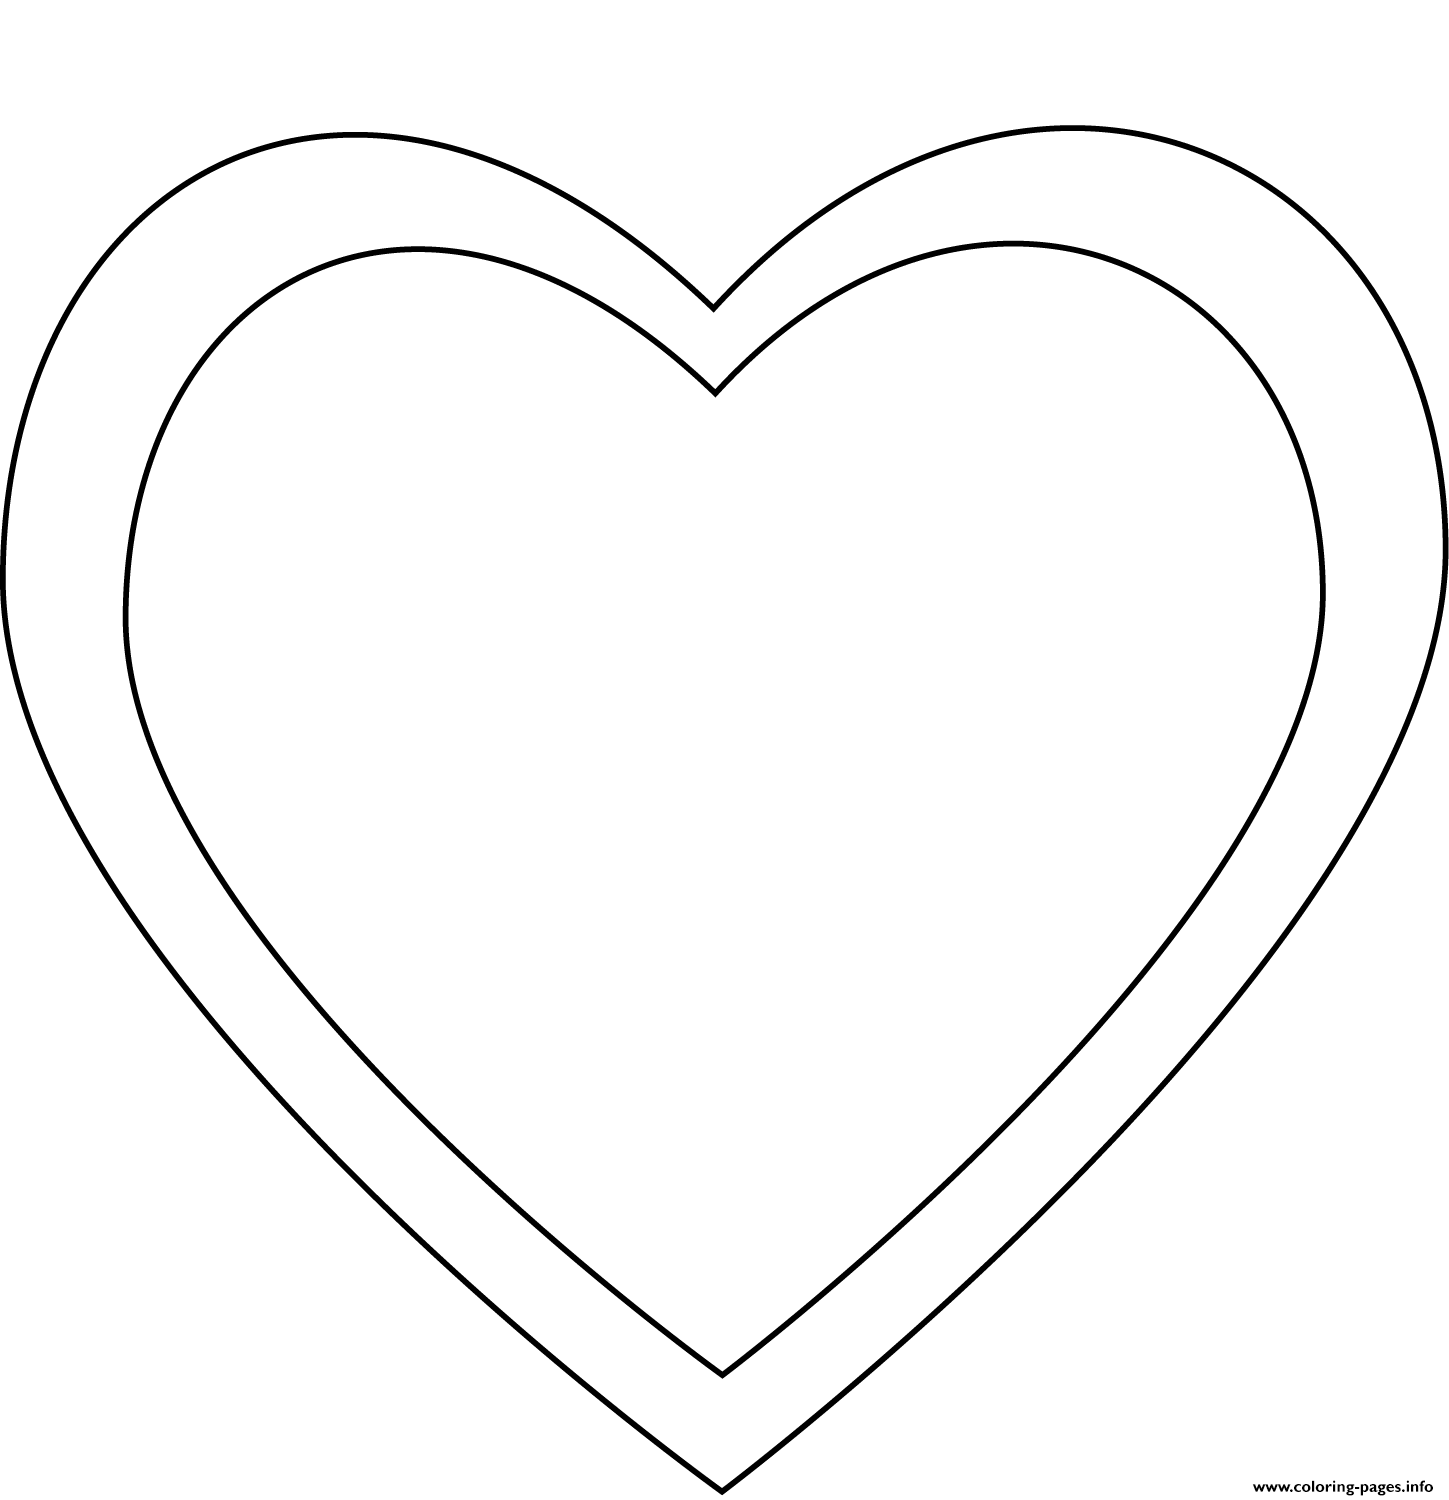 simple heart coloring pages simple heart super coloring in 2020 heart coloring simple coloring pages heart